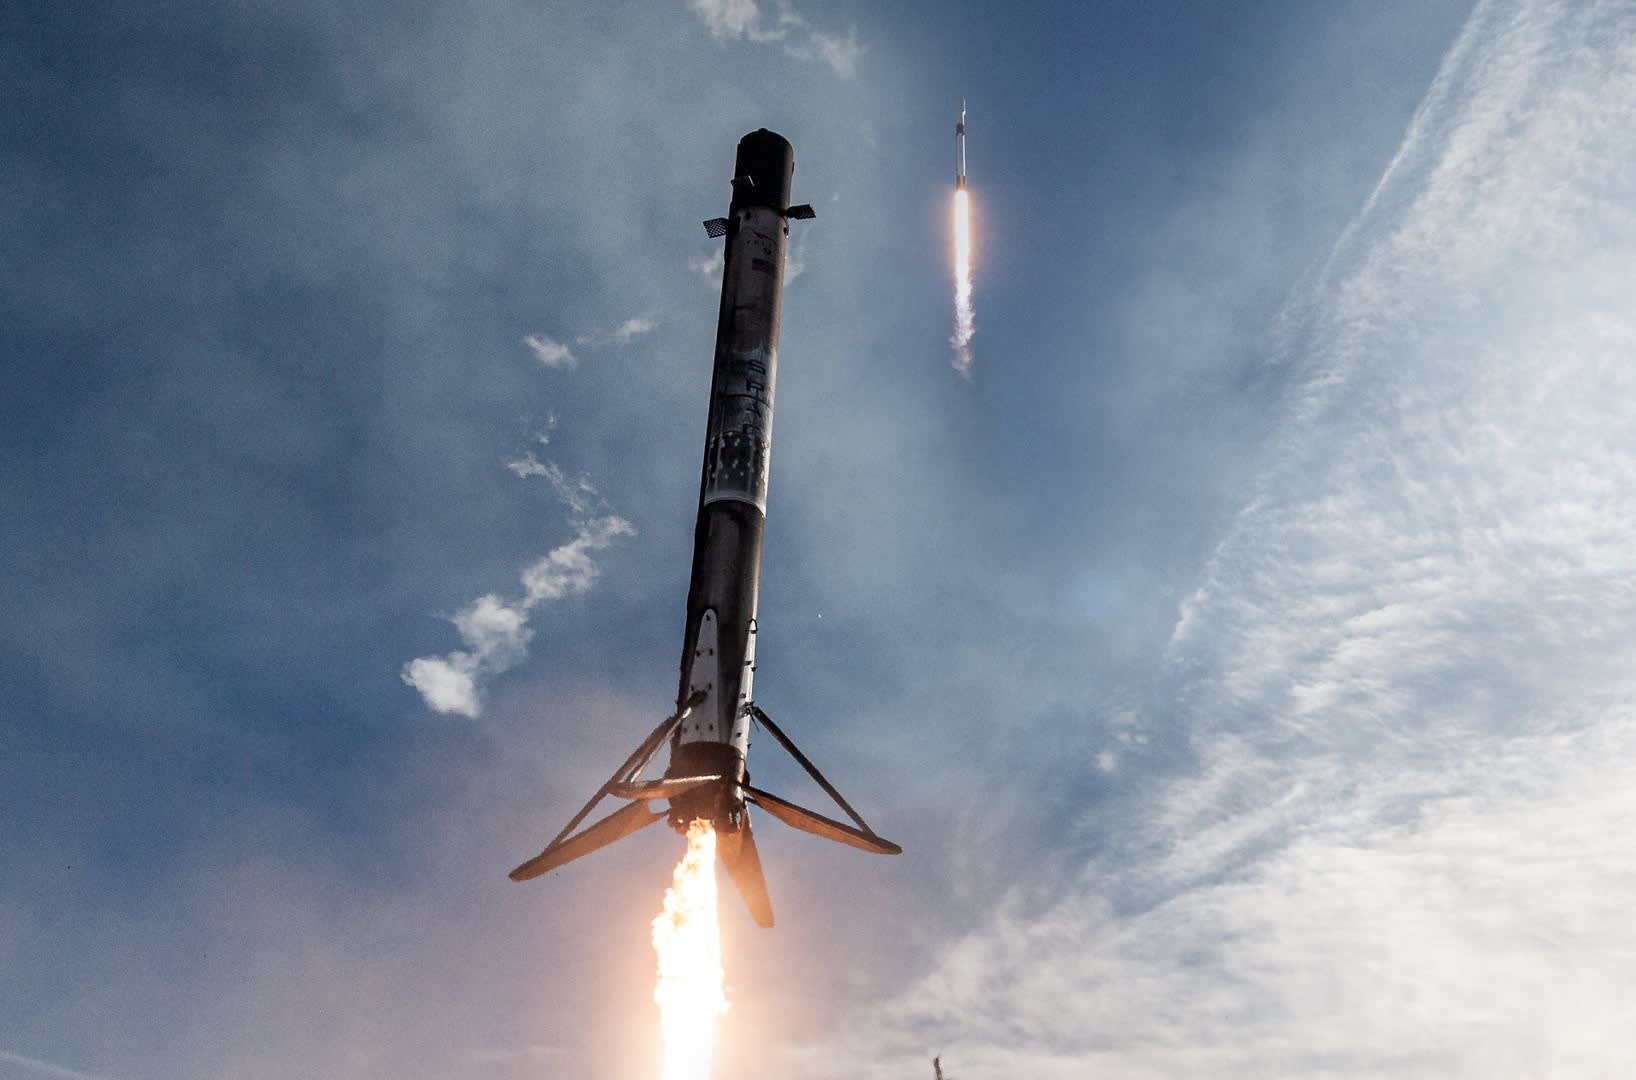 Space Force clears SpaceX to launch reused rockets for military missions